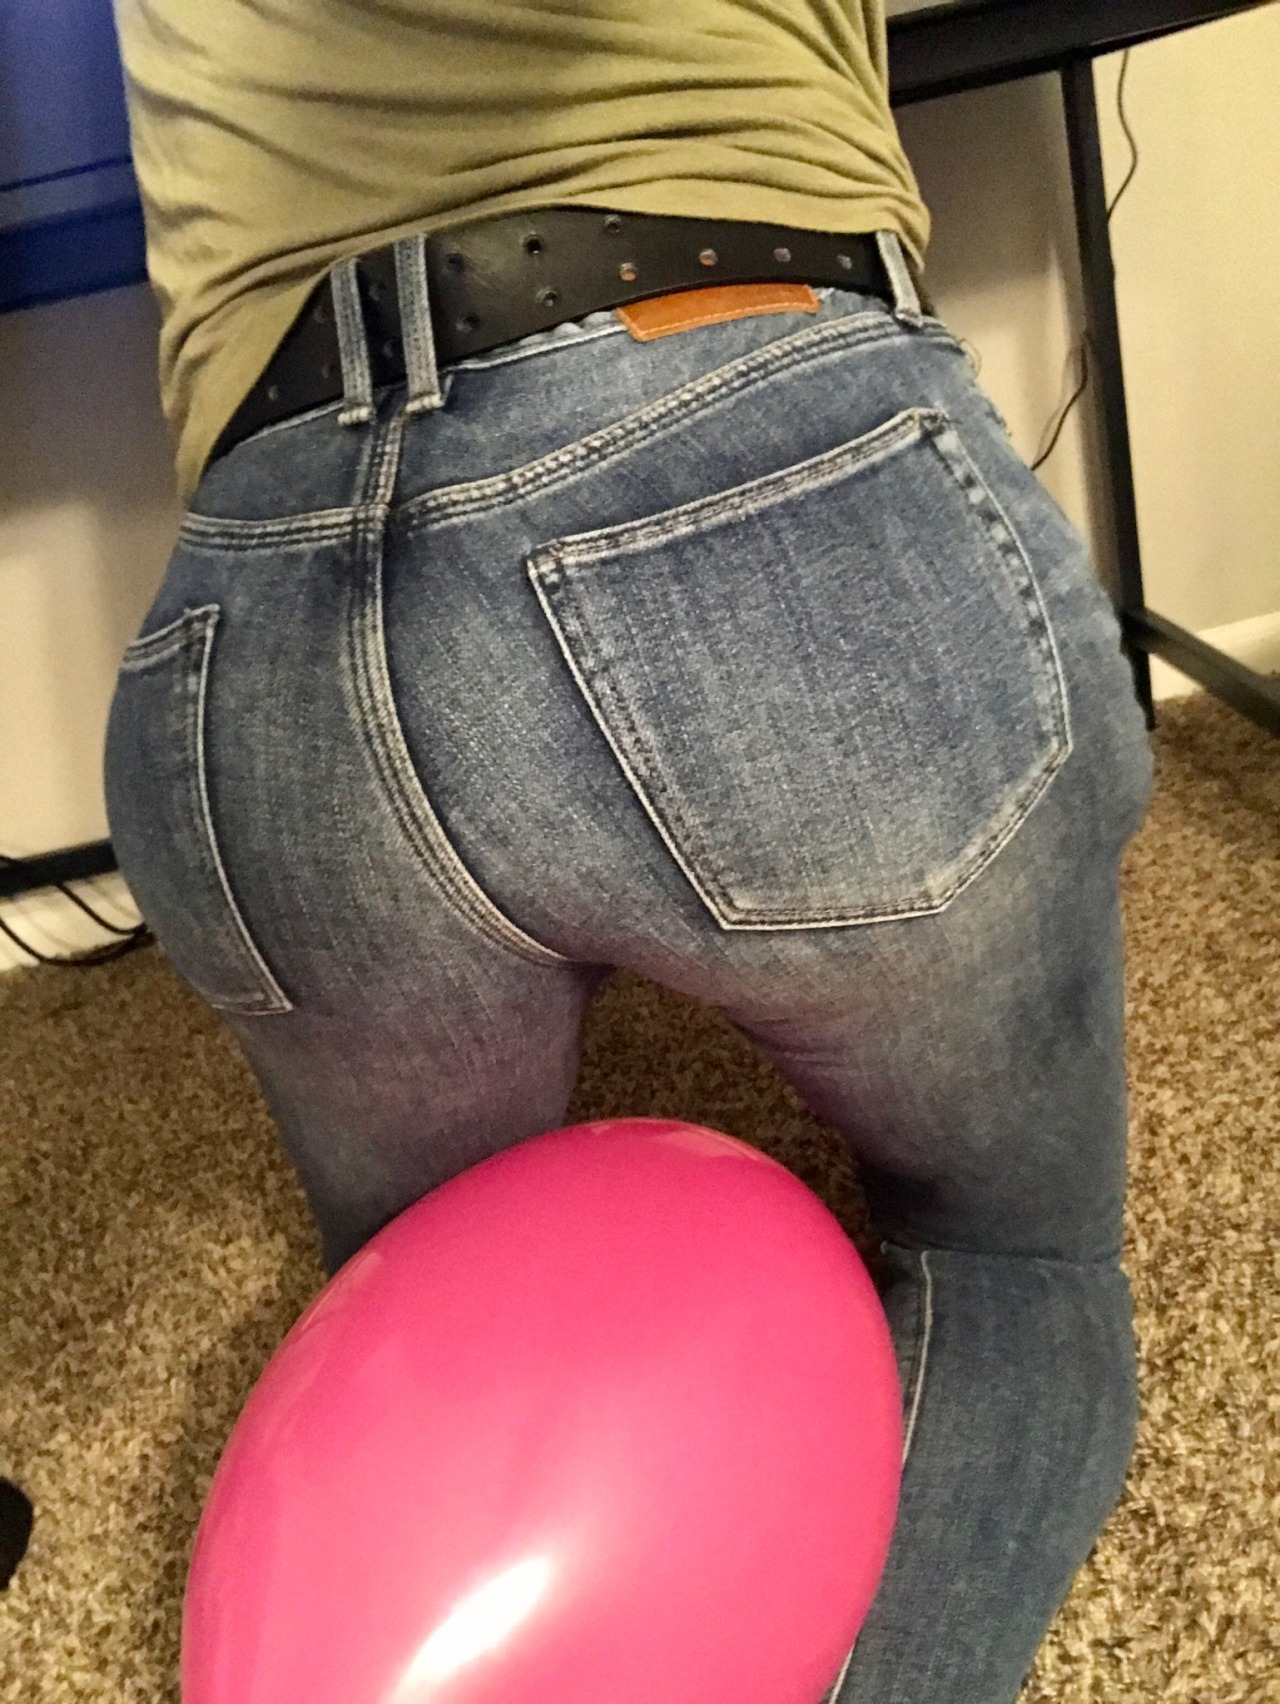 Poping balls out of ass